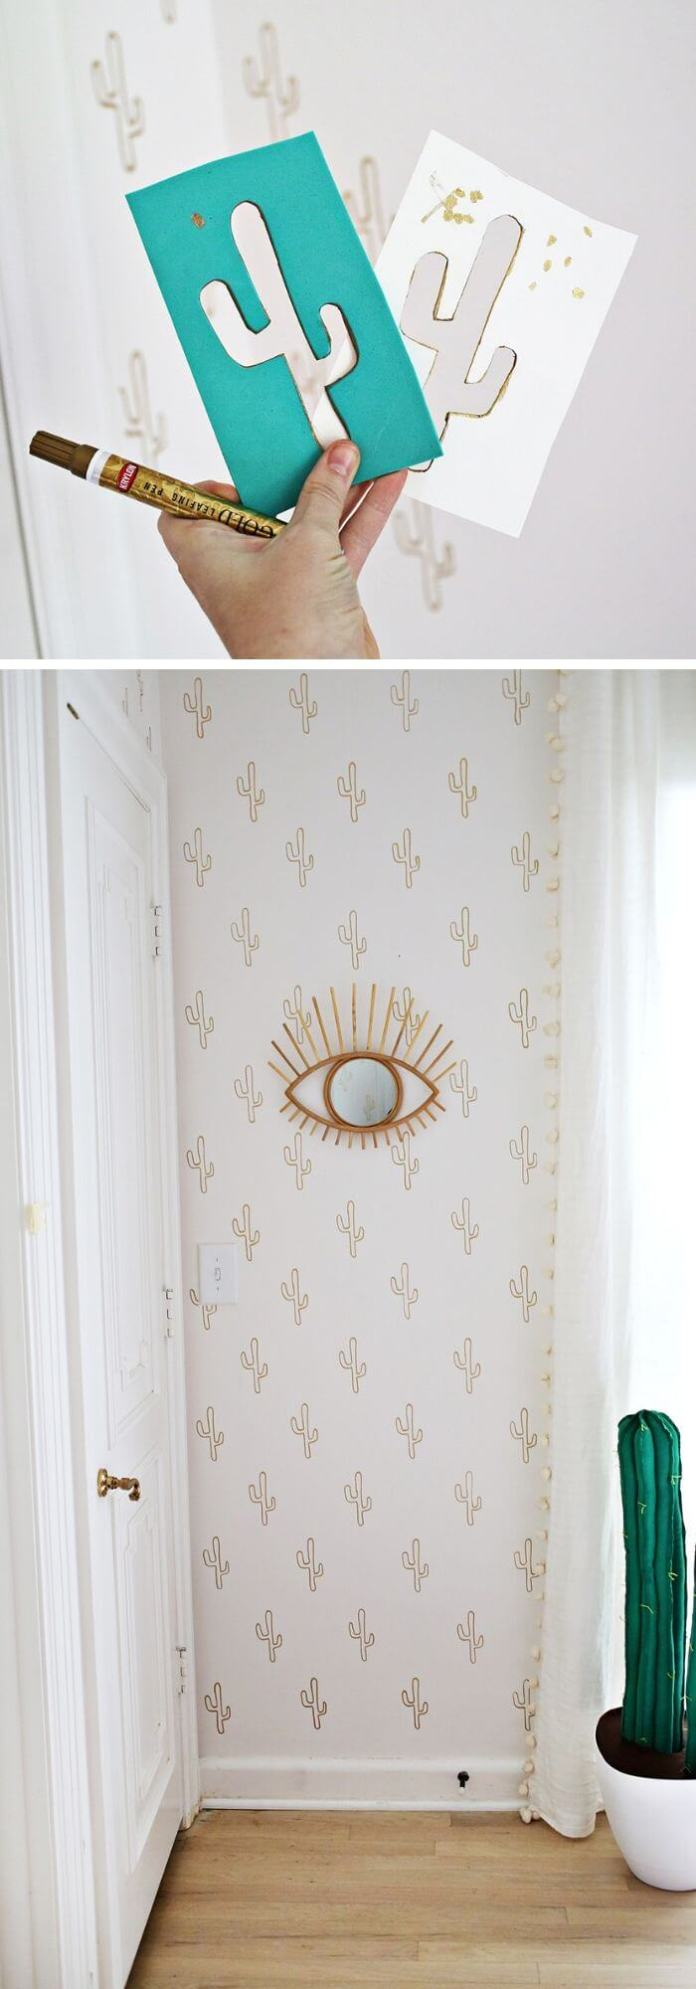 Use your pen and stencil your wall to look good